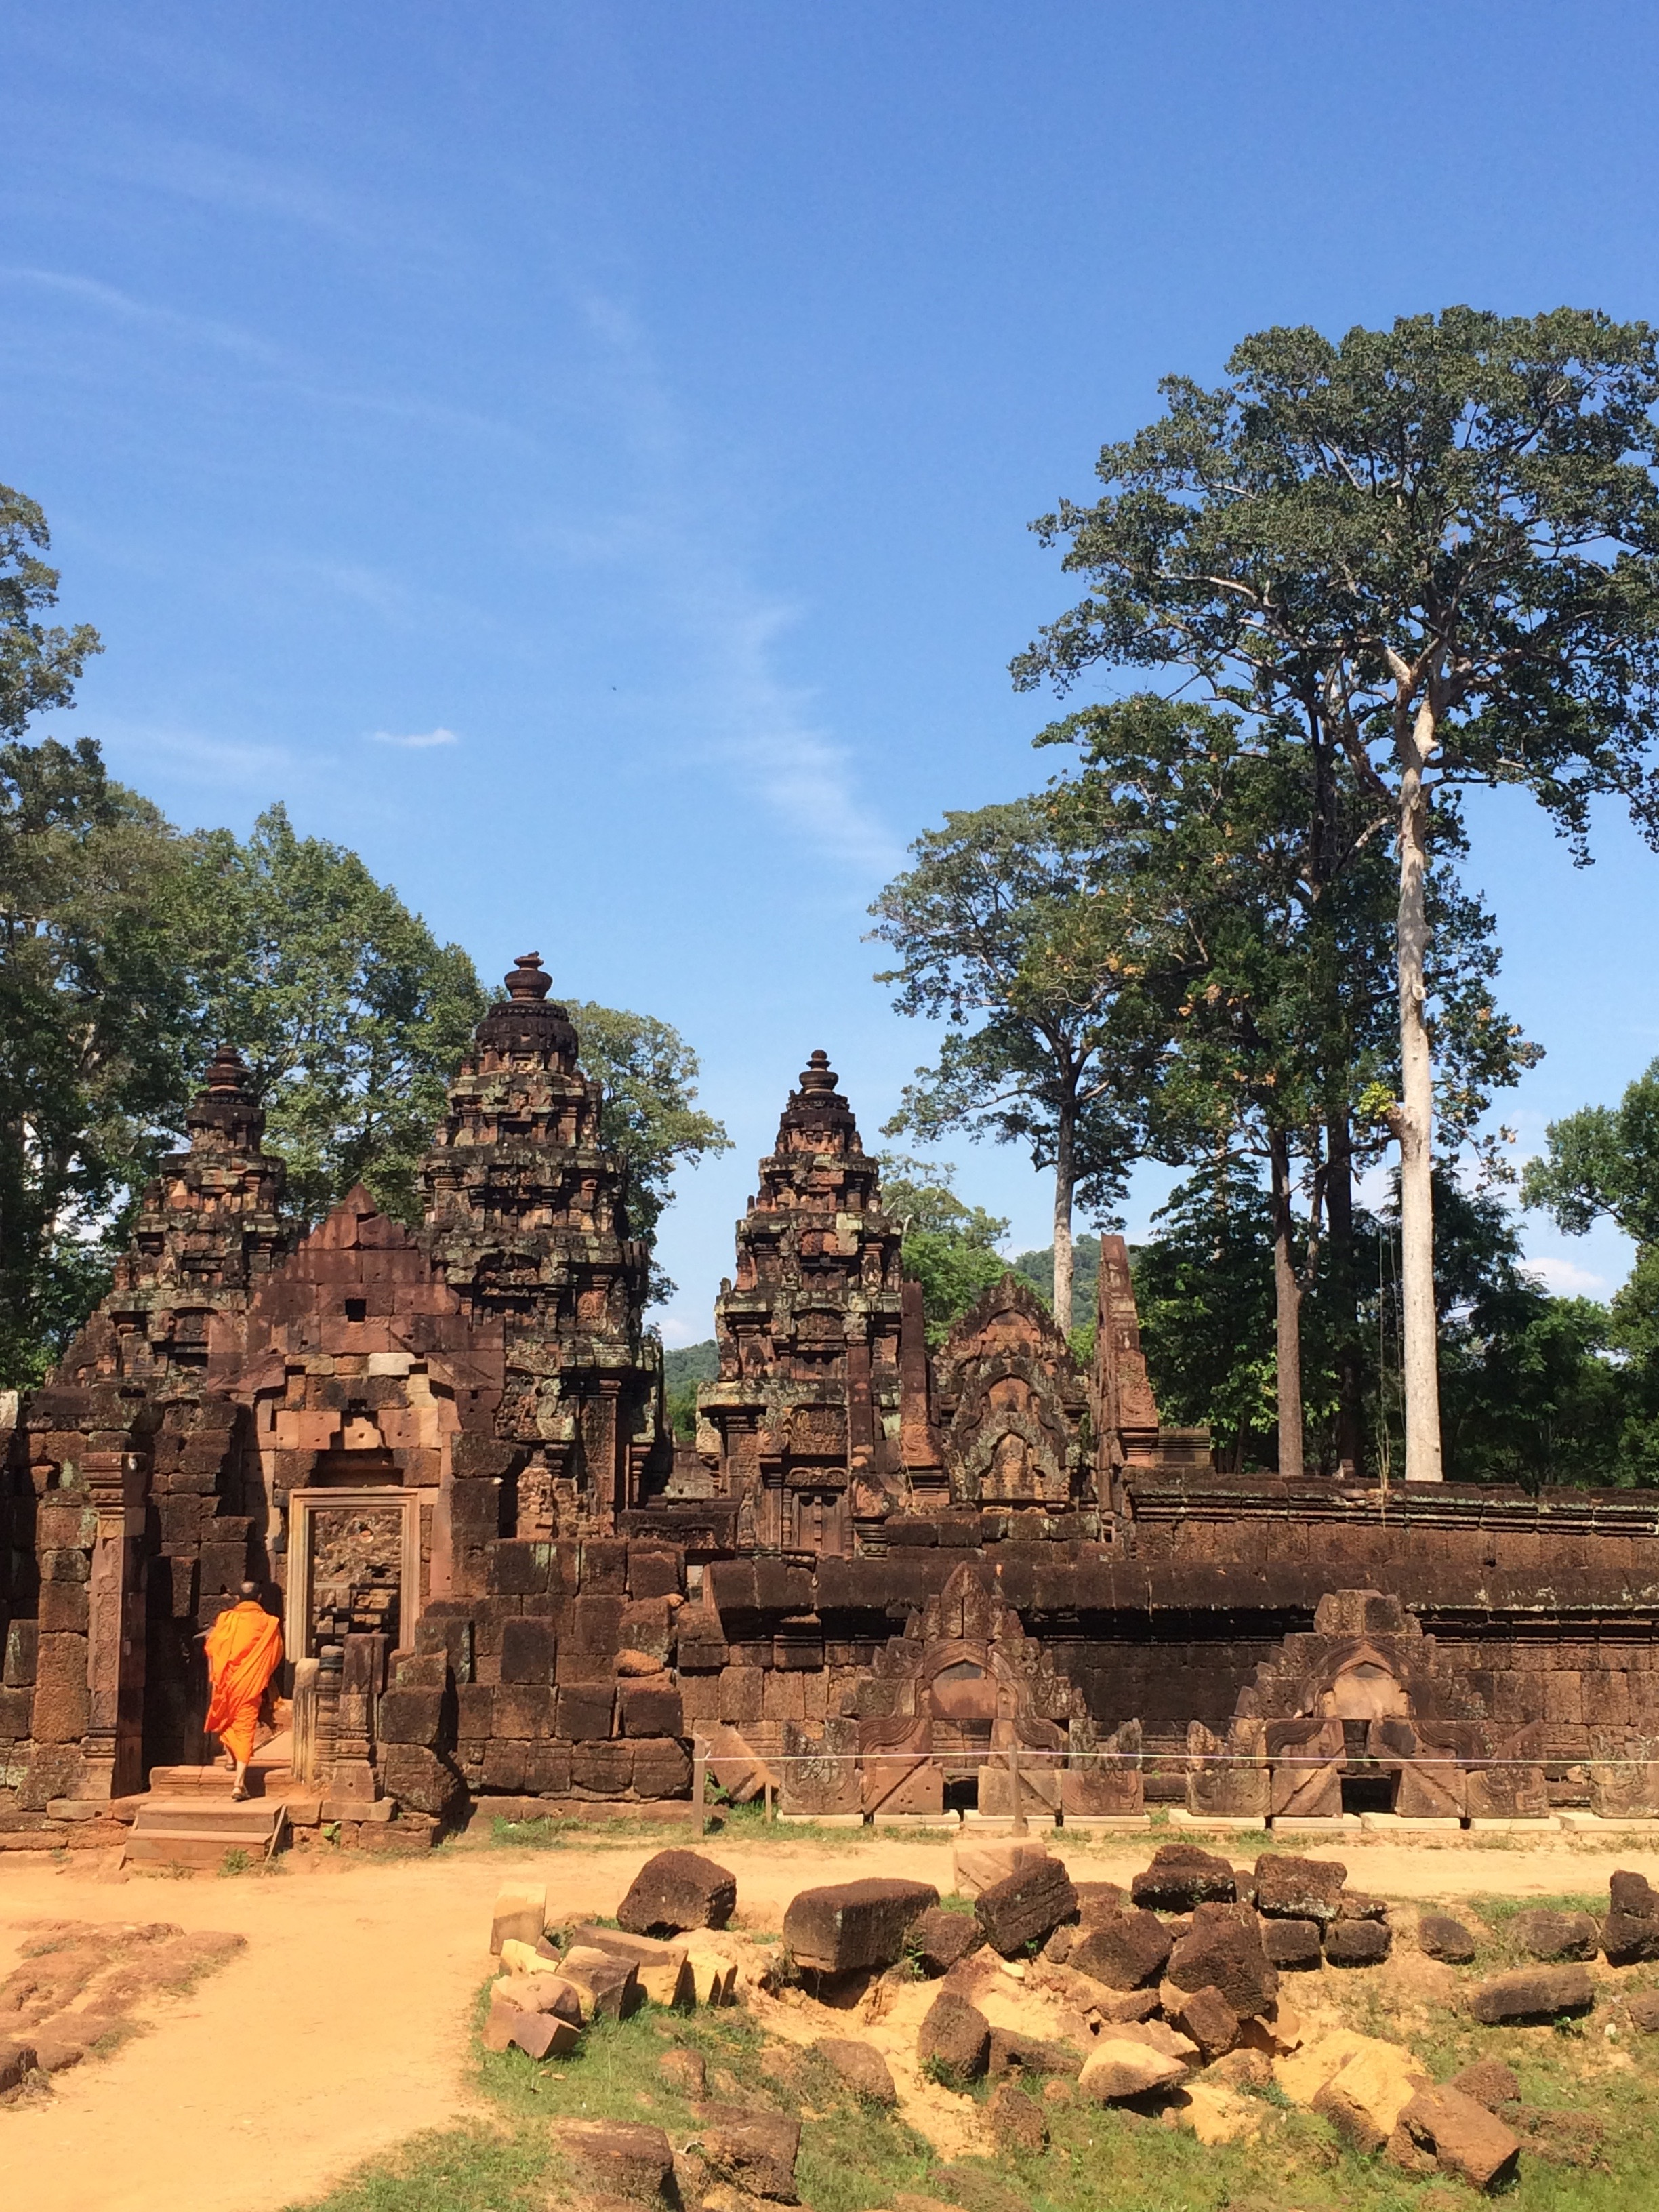 Banteay Srei (Citadel of the Women) in Siem Reap, Cambodia - May 2015